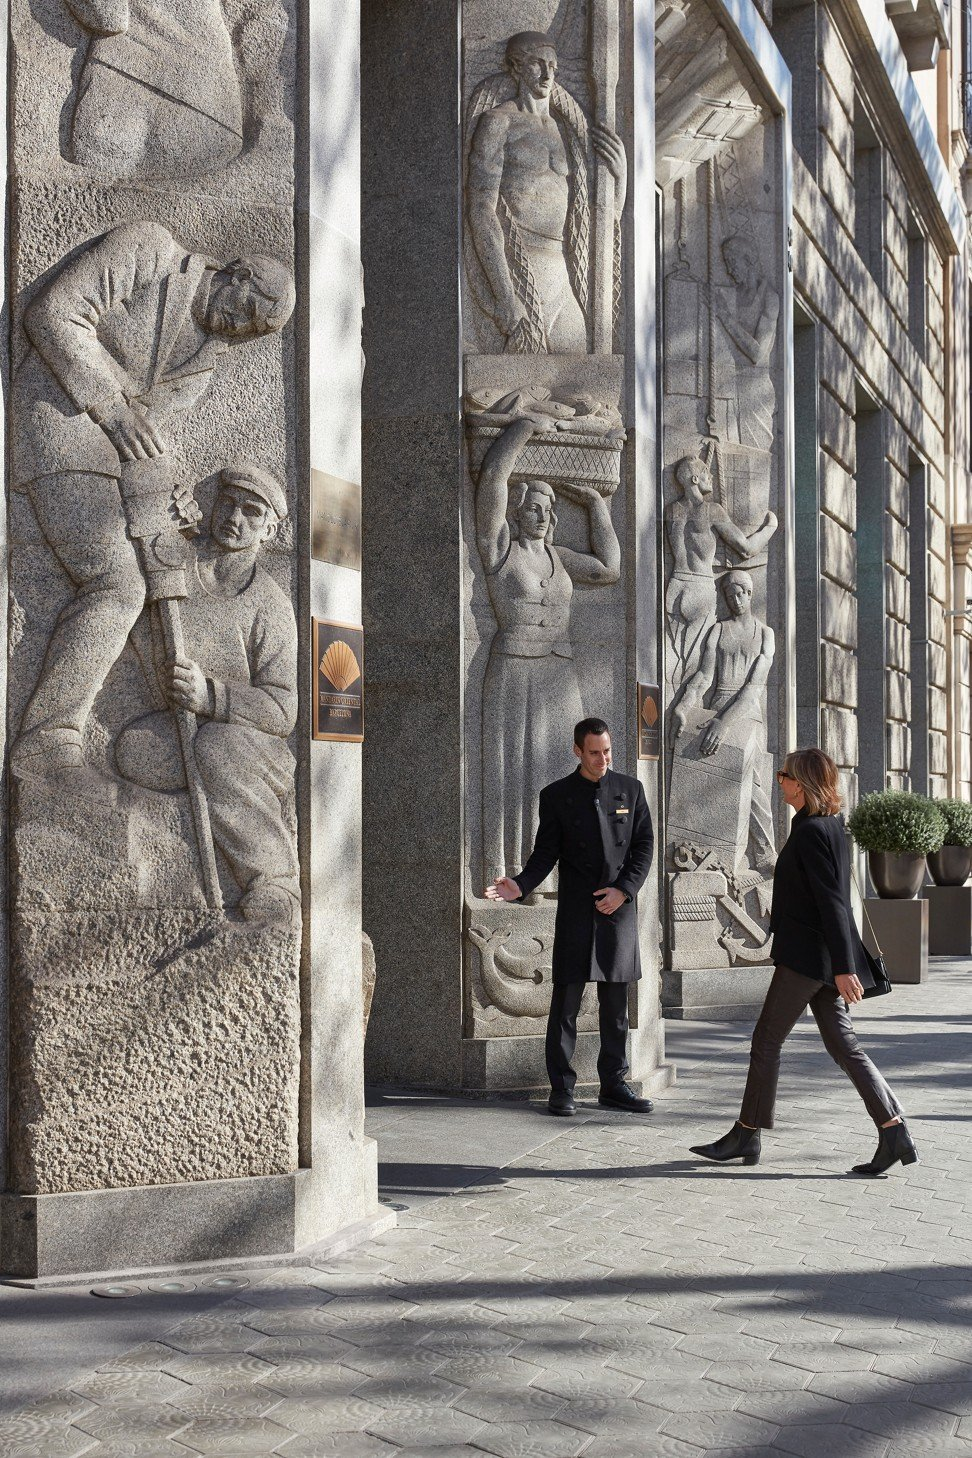 From Como and Aman to Mandarin Oriental: how Asia's luxury hotel brands are reshaping hospitality in the West